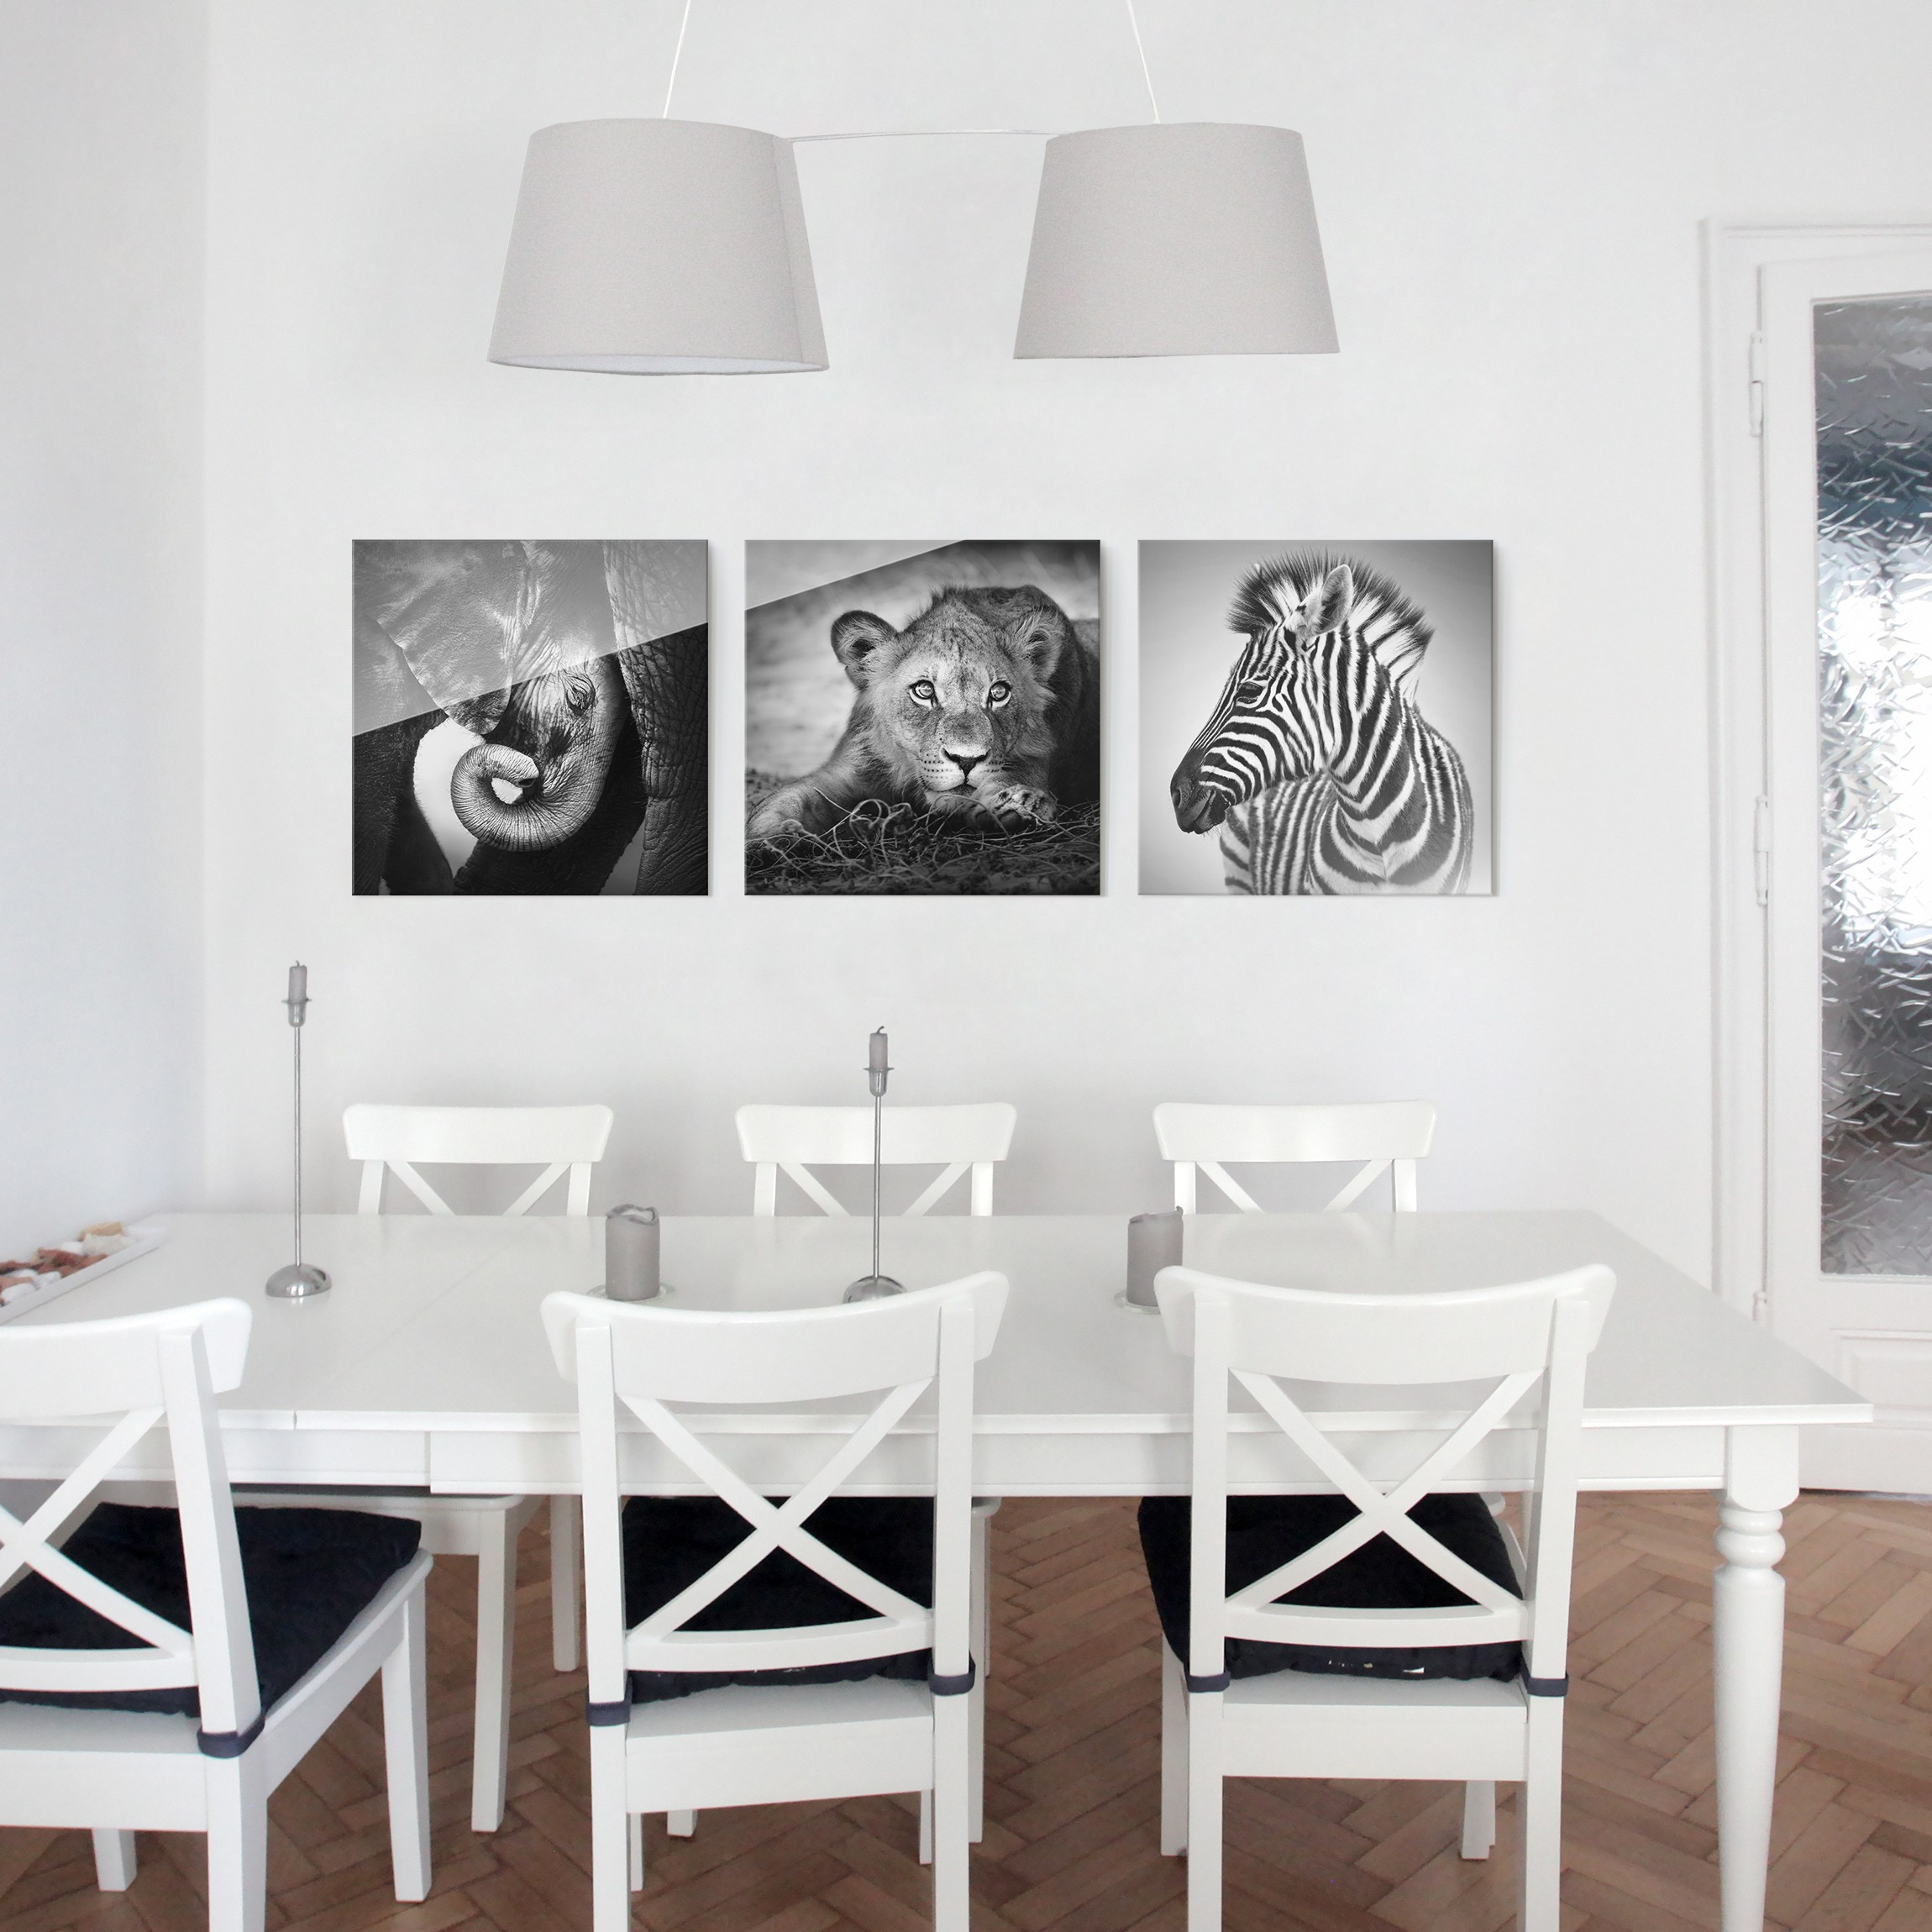 glasbild mehrteilig babytiere 3 teilig. Black Bedroom Furniture Sets. Home Design Ideas